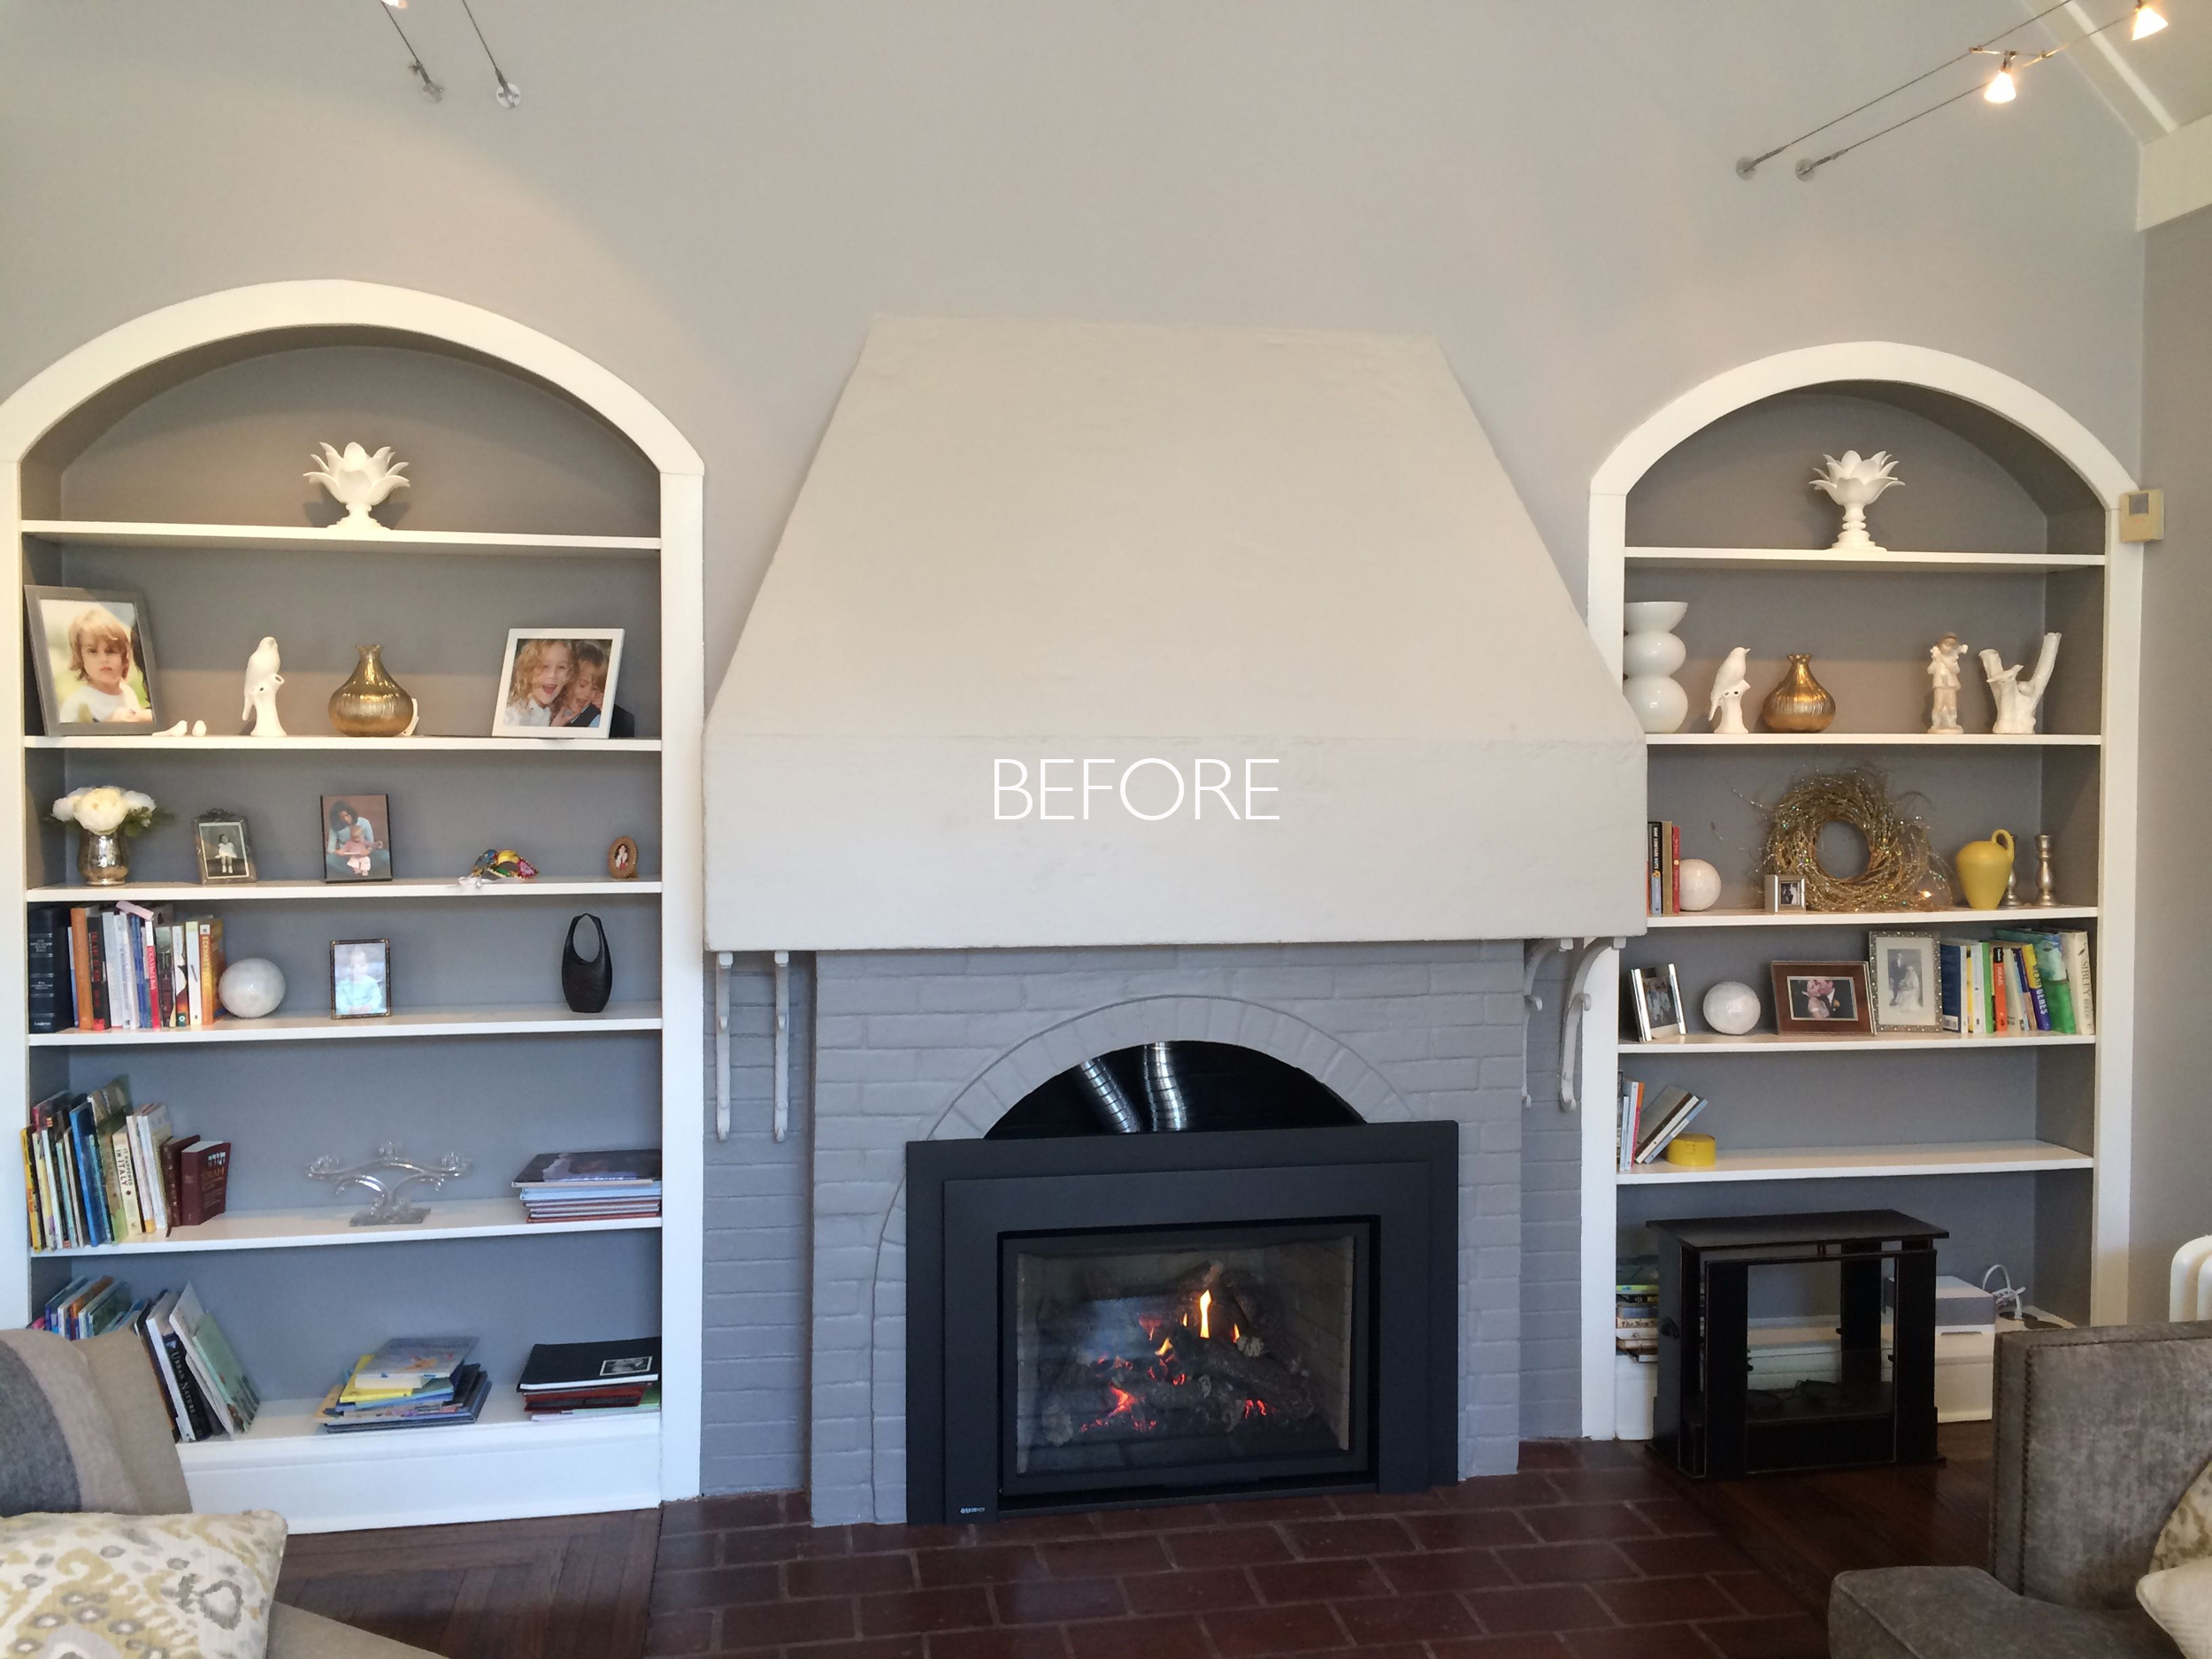 BEFORE Living Room Fireplace_Larchmont_2016.jpg